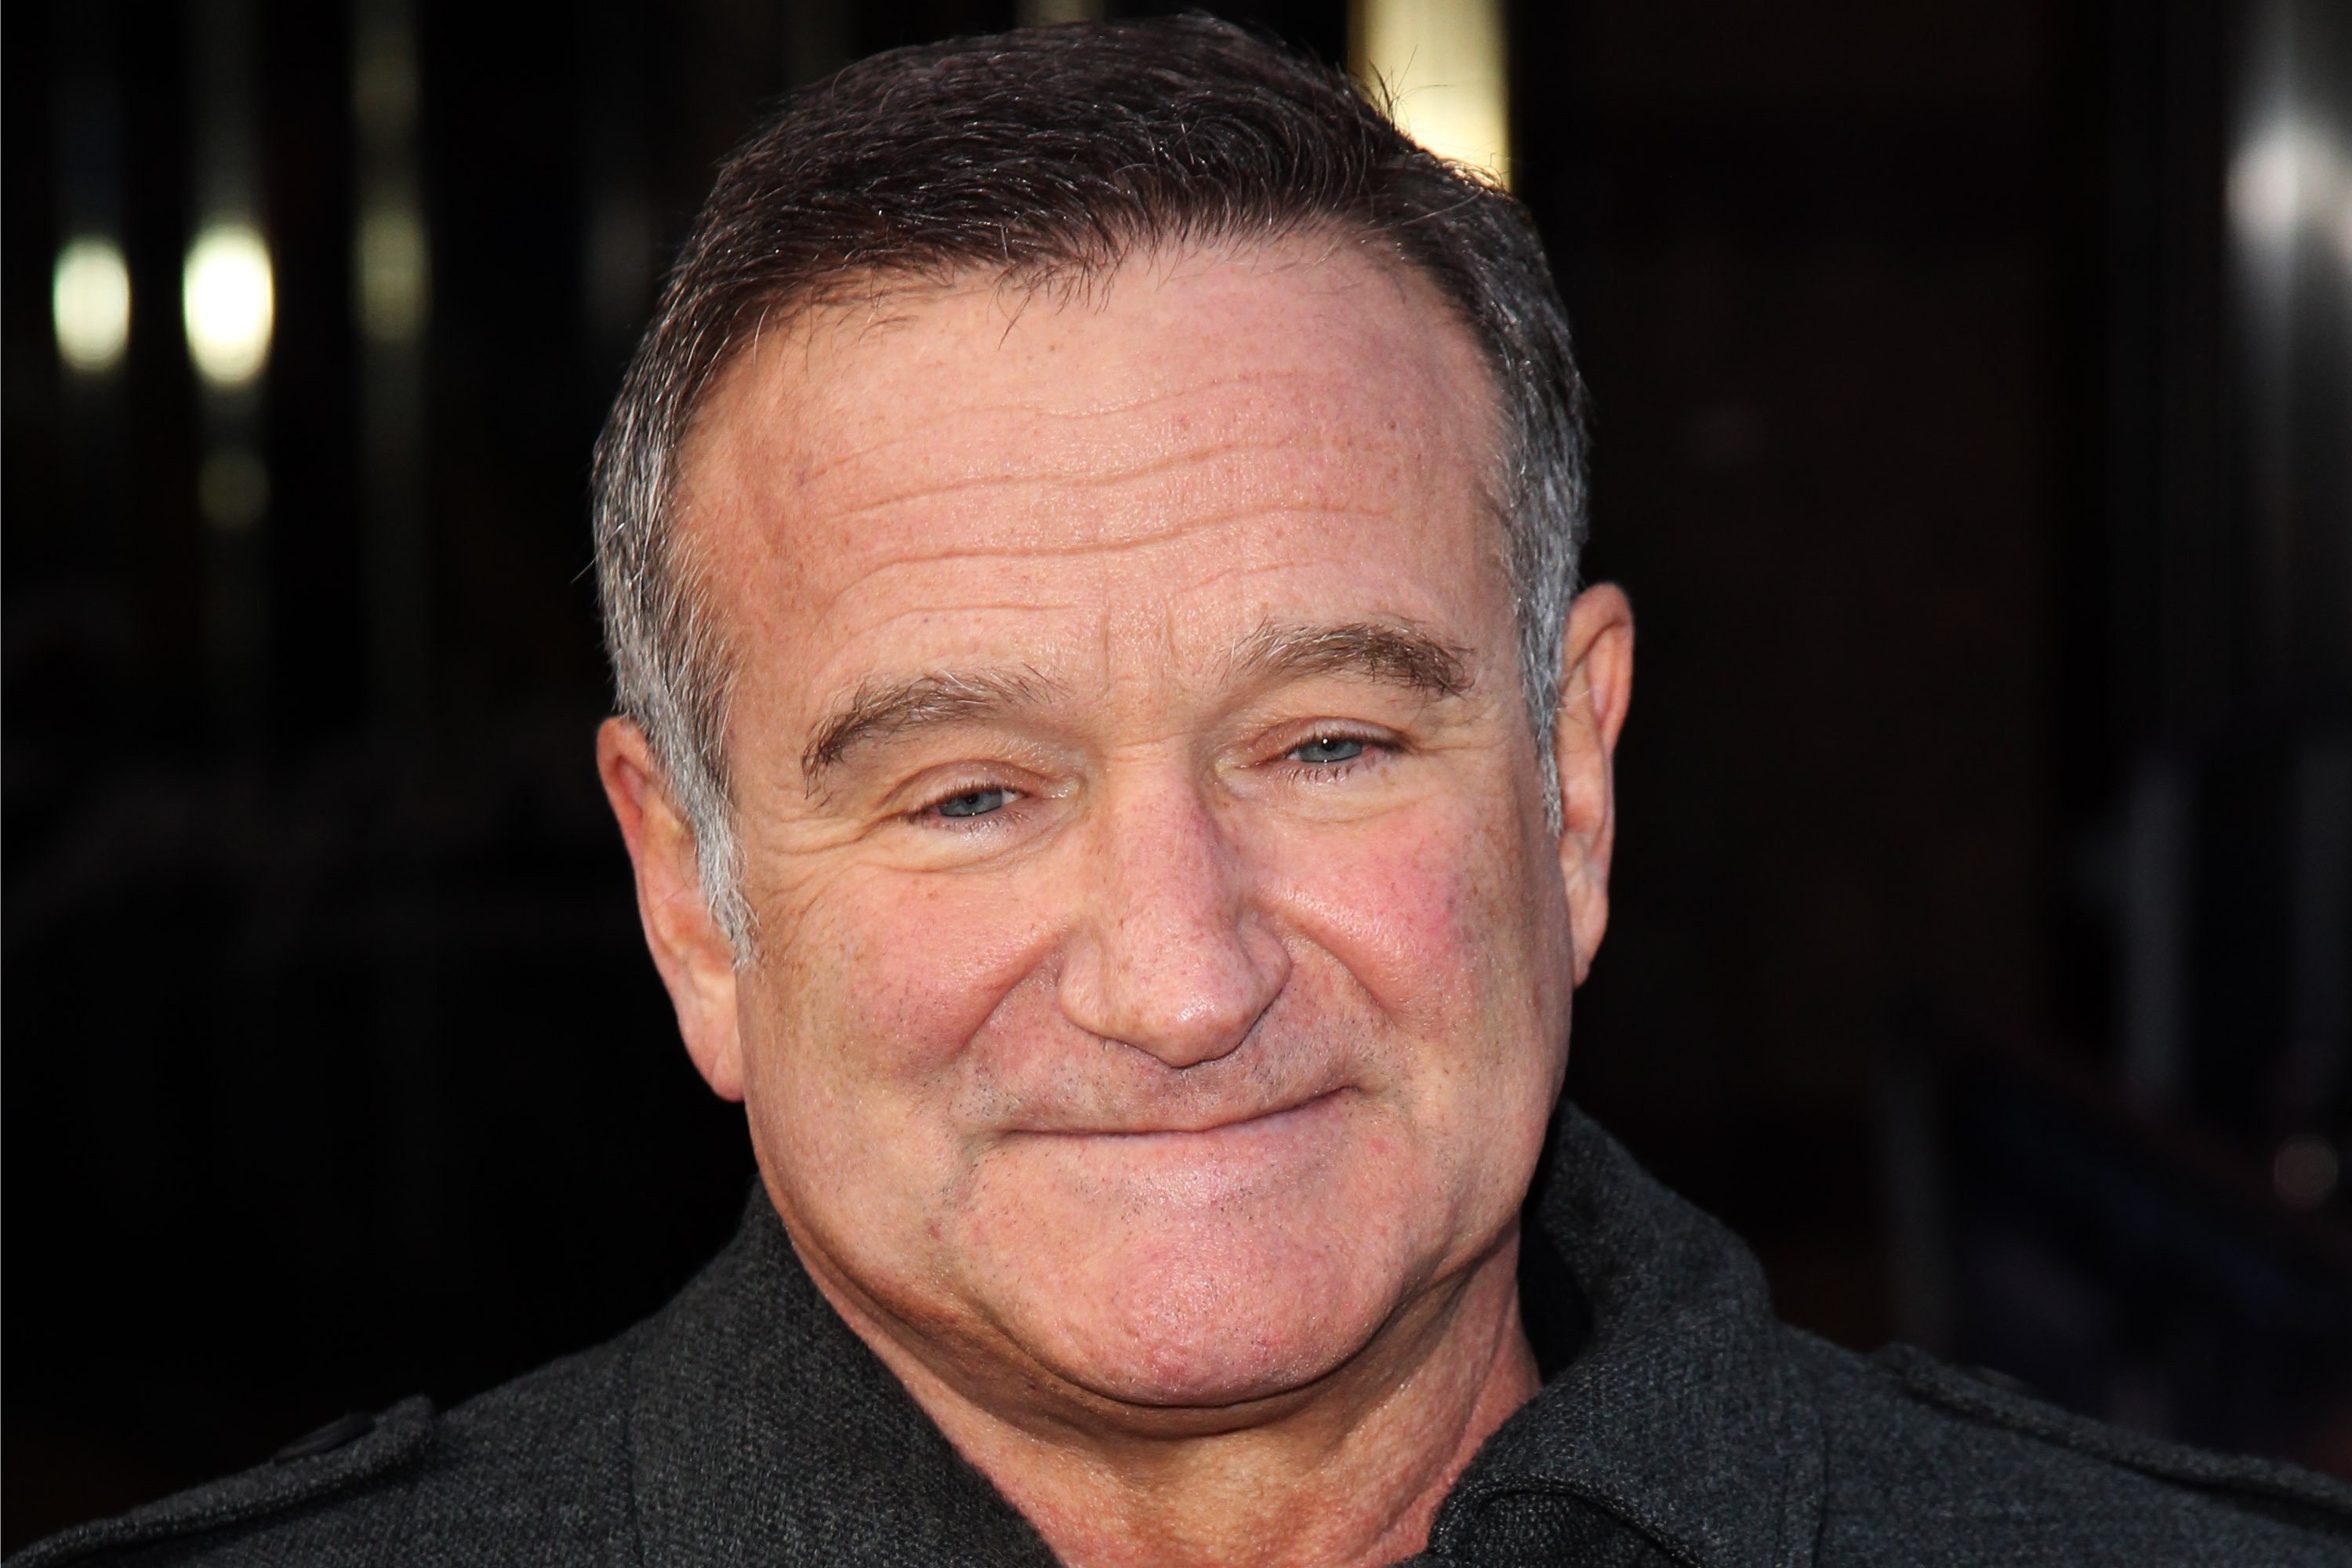 """Robin Williams at the European premiere of """"Happy Feet Two"""" at The Empire Leicester Square, 2011, London, England.   Photo: Getty Images"""